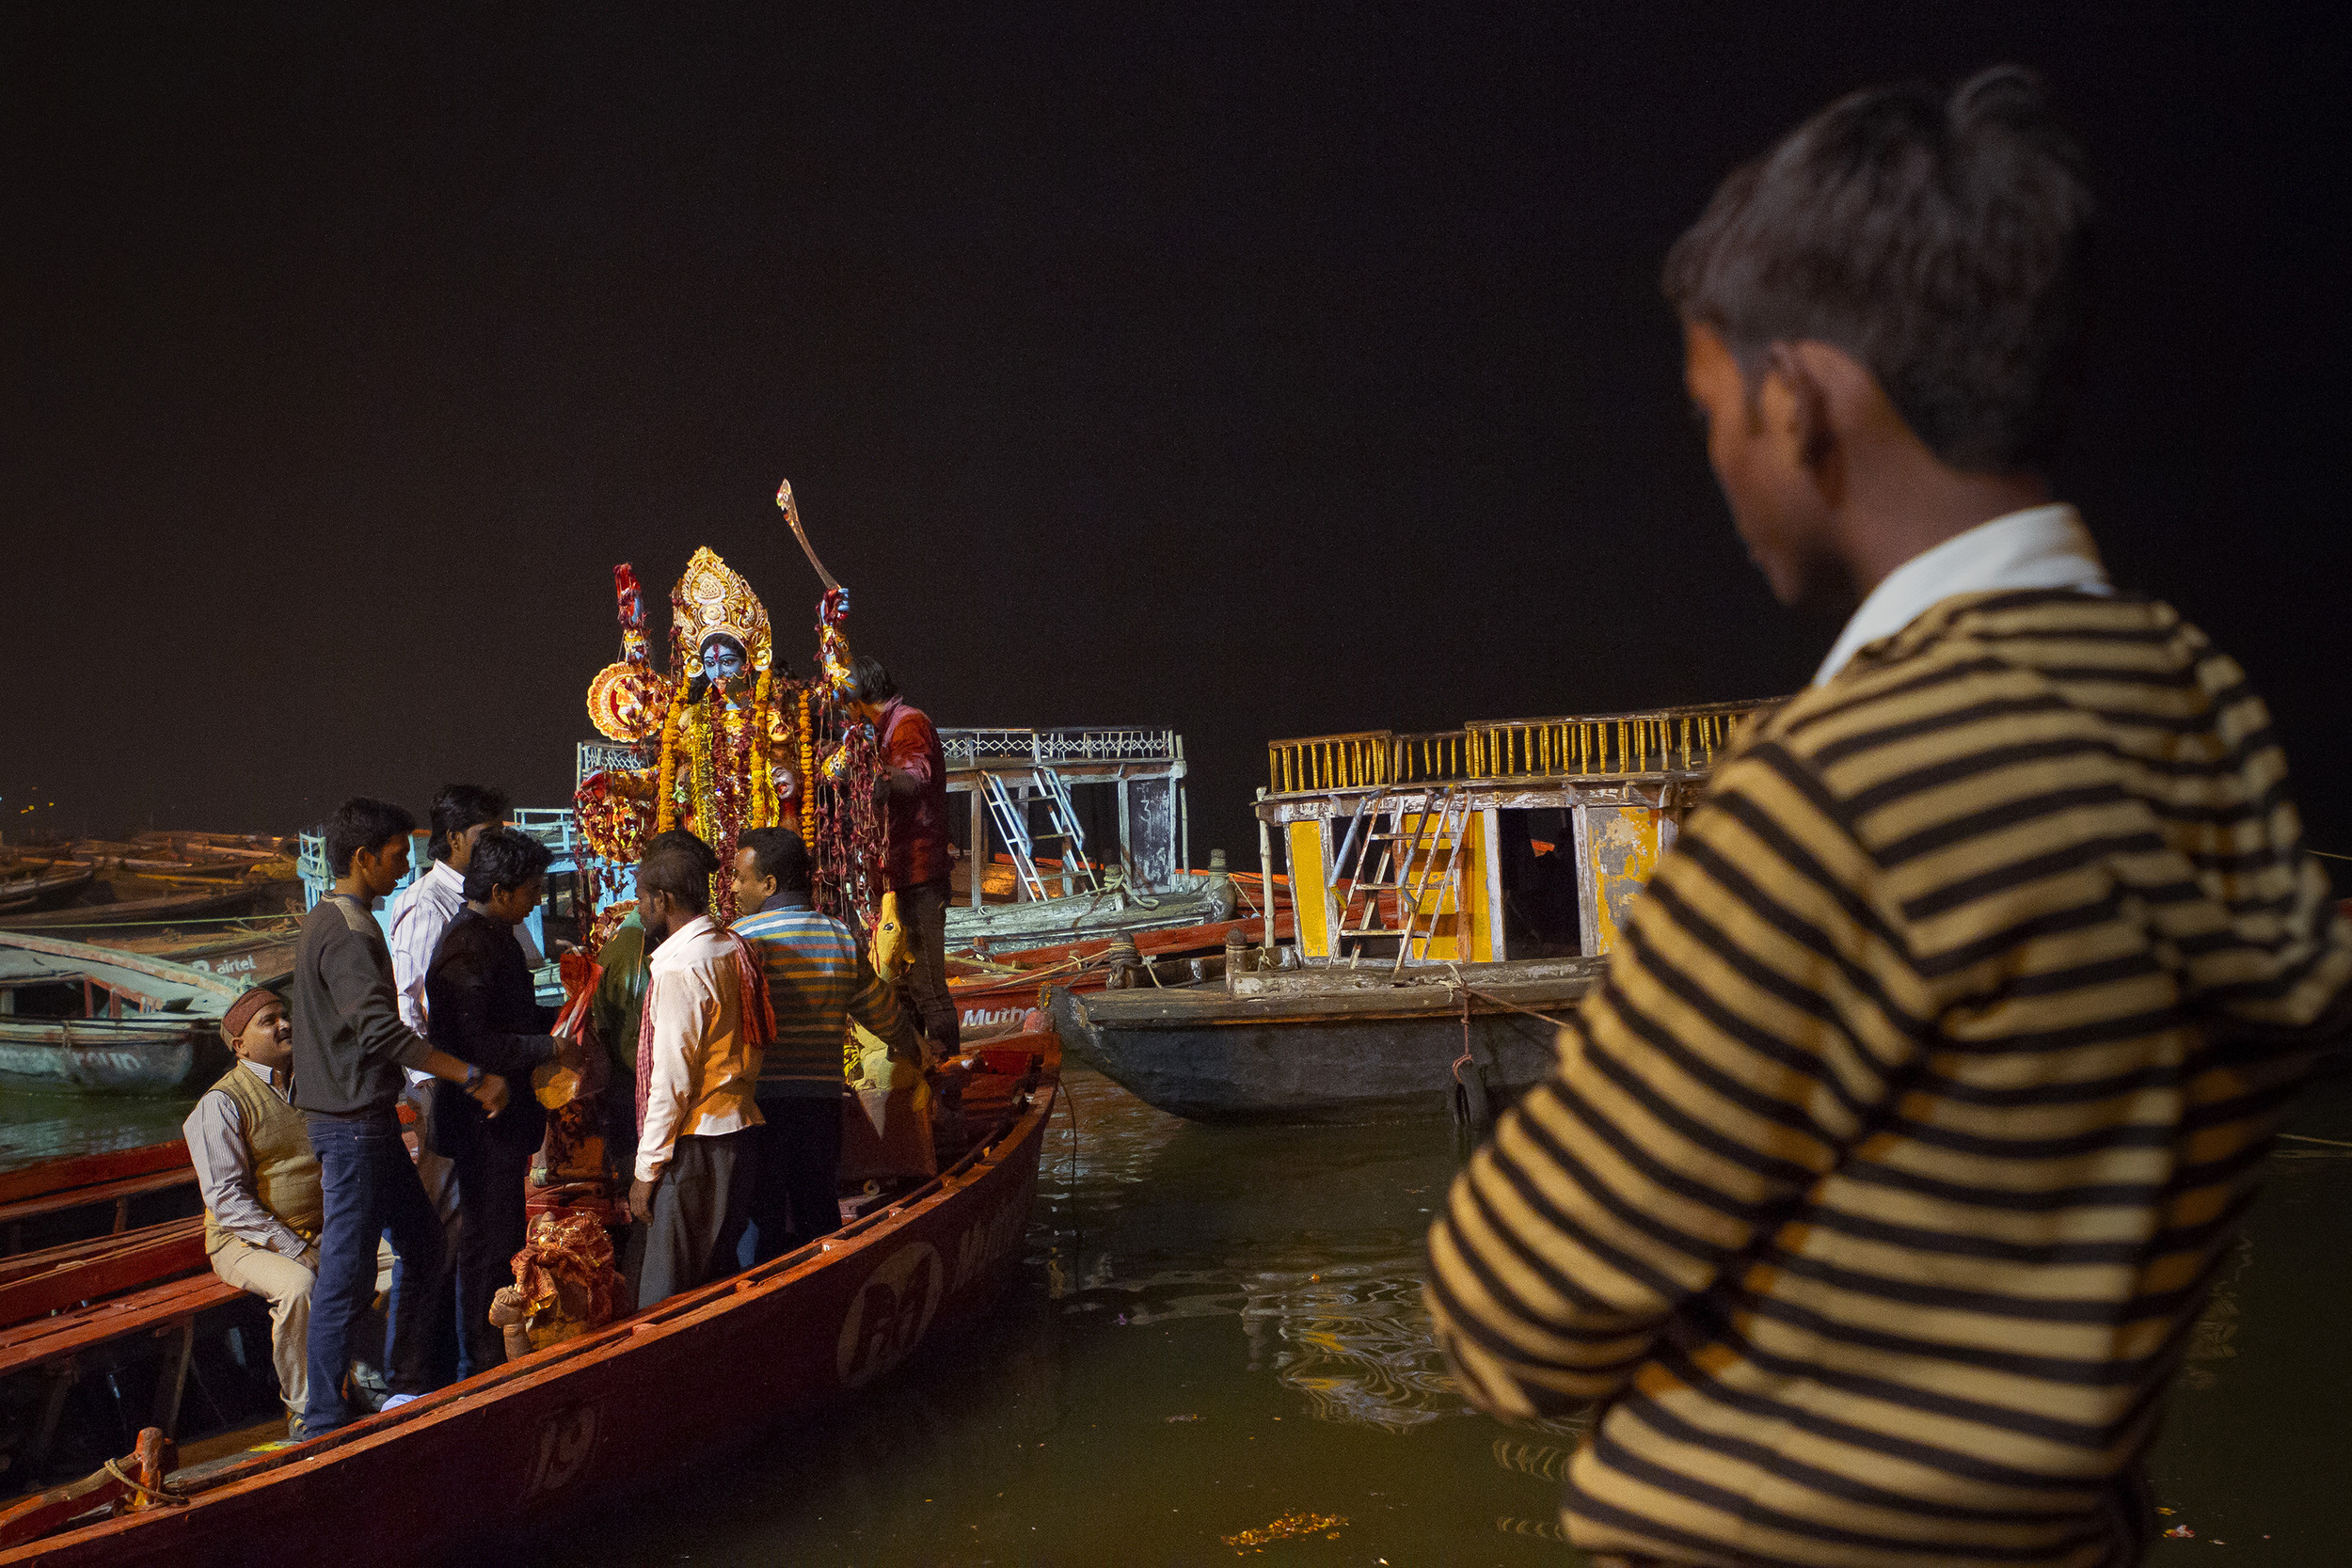 14 November, 2012 - Dashashwamedh Ghat, Varanasi   Kali Puja. Families purchase and decorate large plaster statues of the god Kali in their homes before parading it to the banks of the Ganges where it tossed from a boat into the river